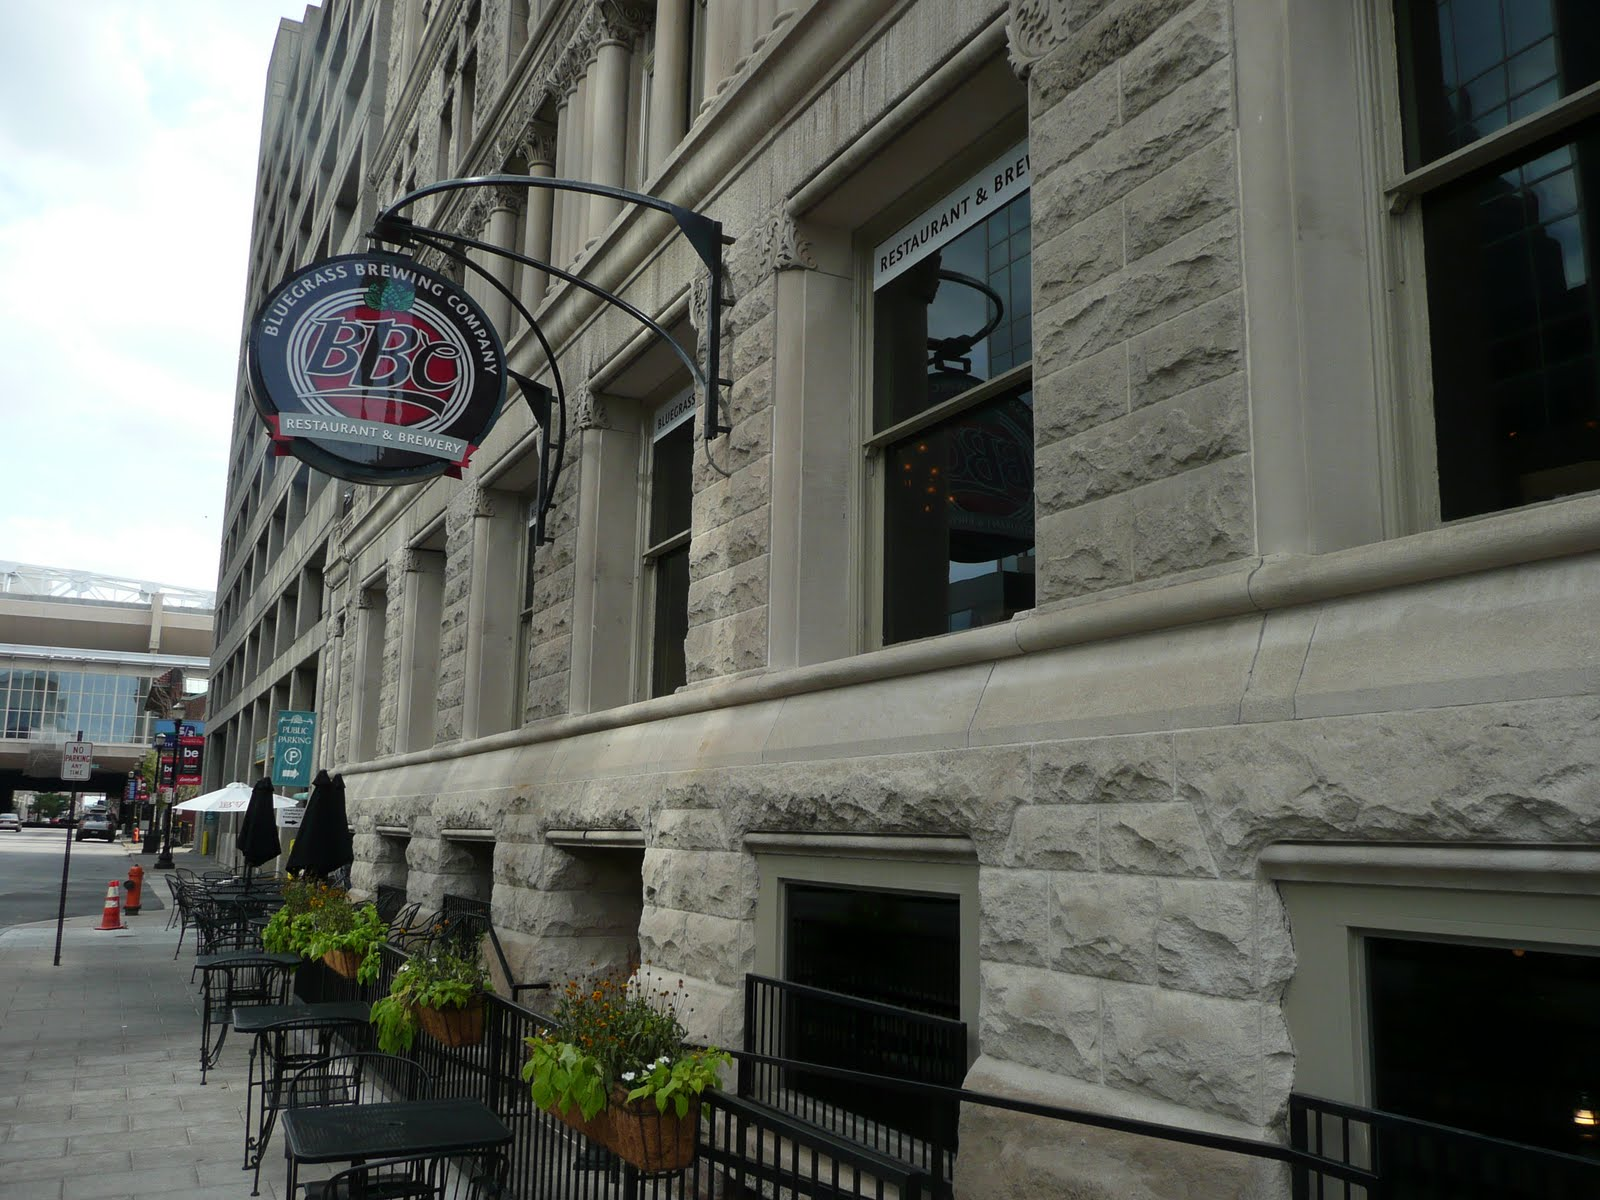 Bluegrass Brewing Co - Restaurants - 300 West Main Street, Louisville, KY, United States